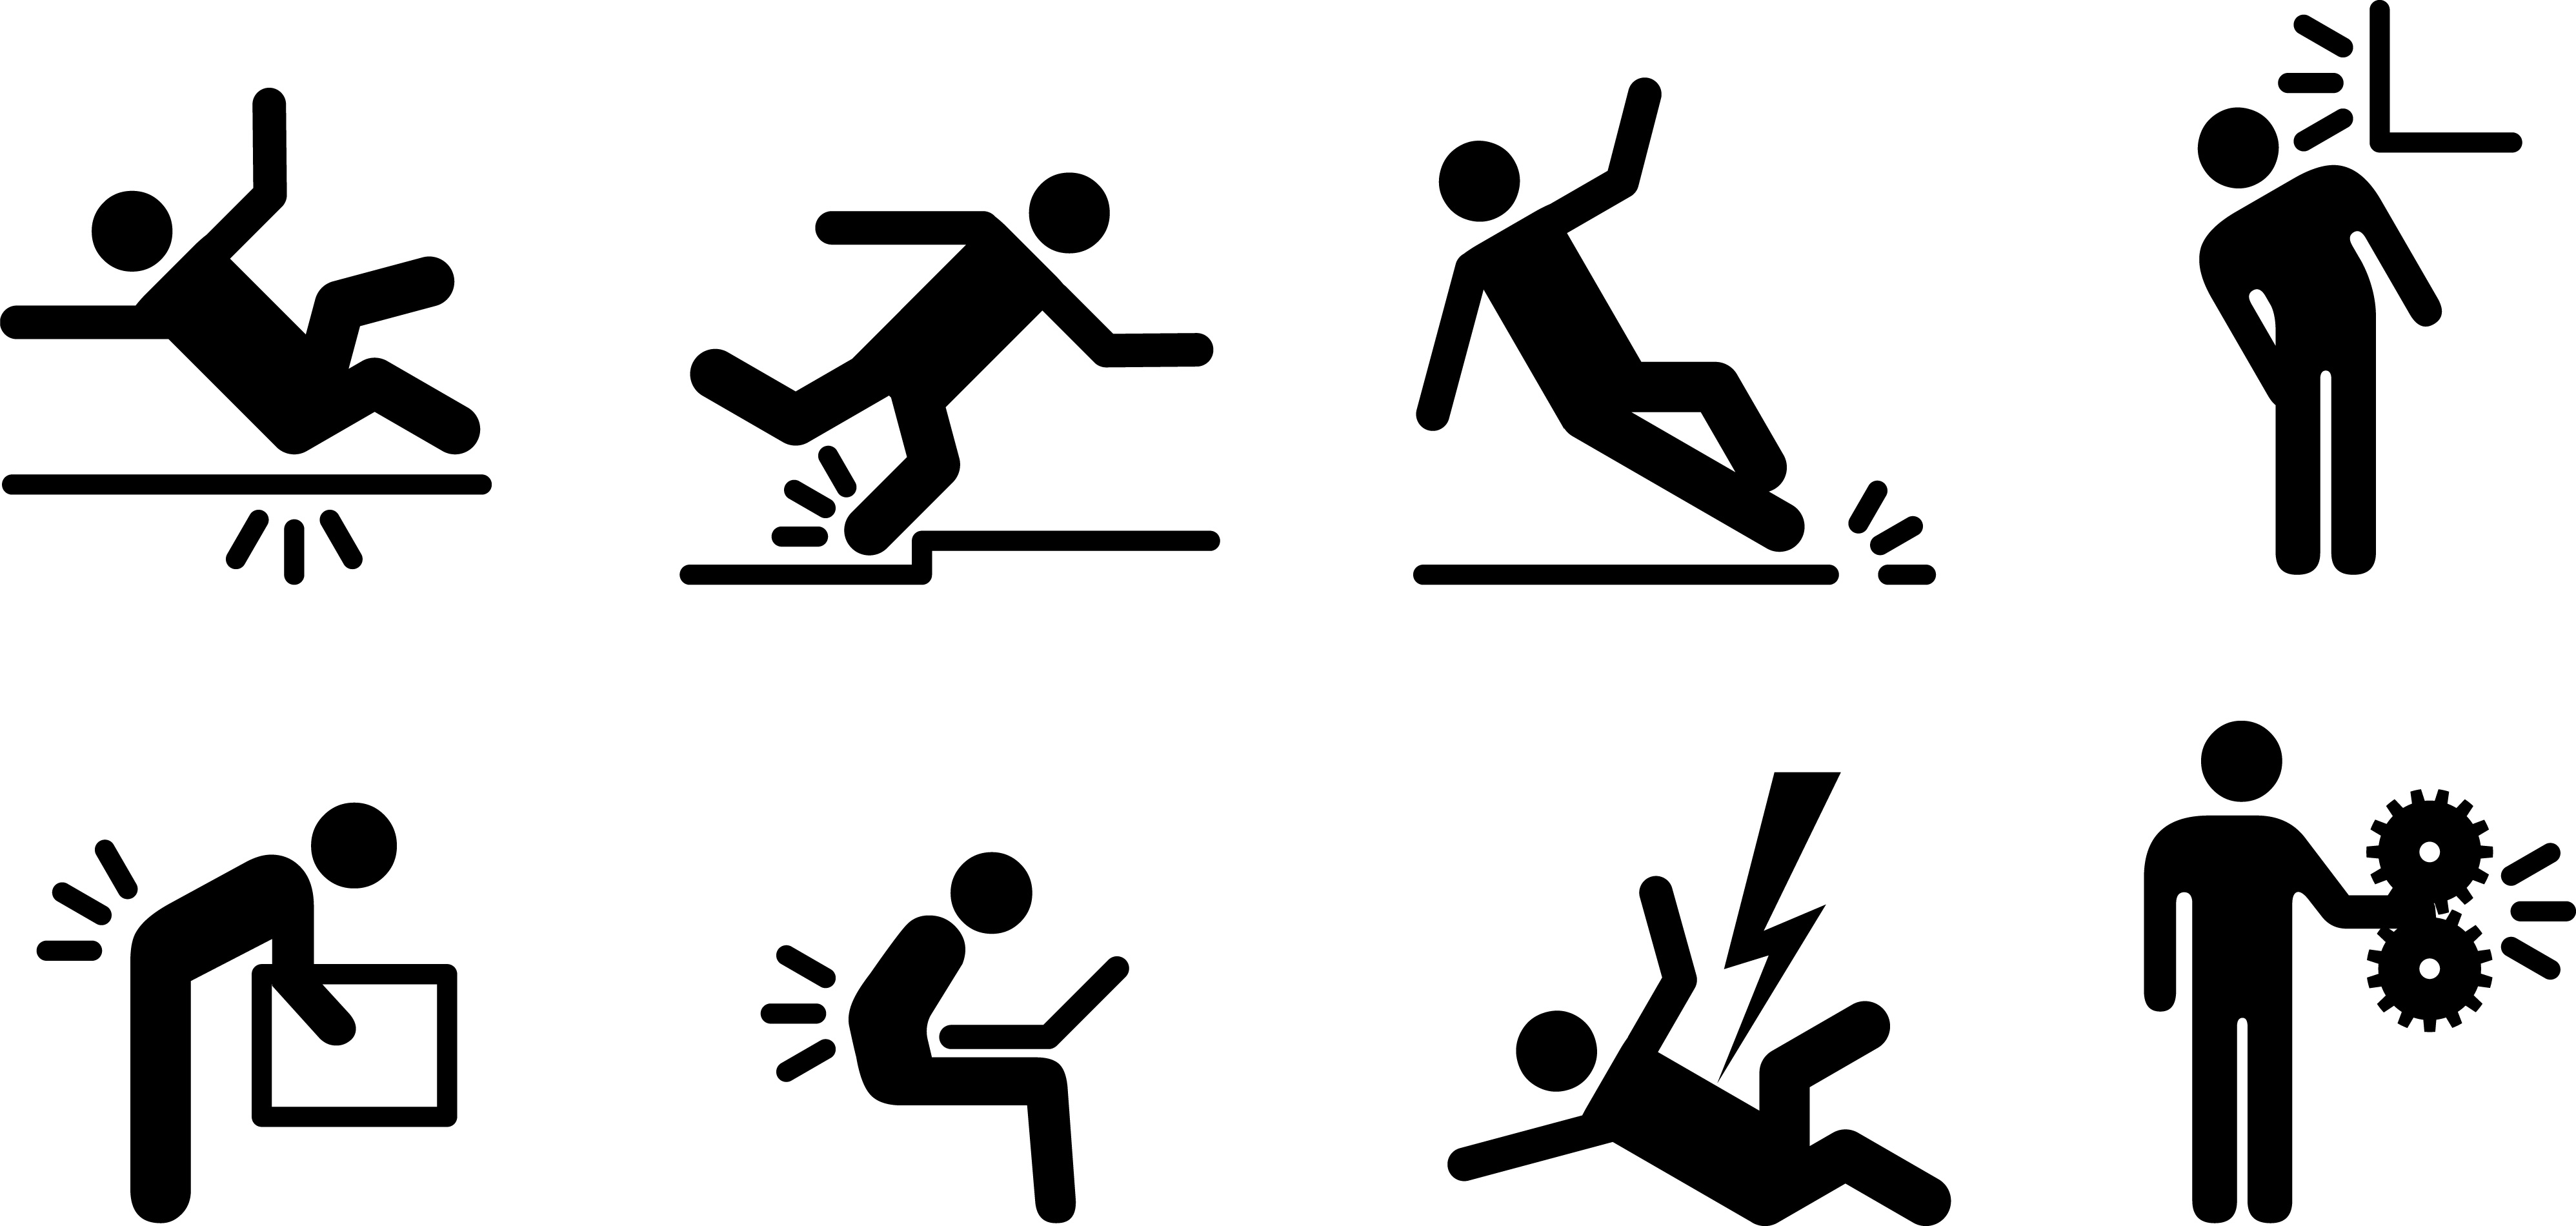 Black and white photo of stick figures mimicking different kinds of accidents